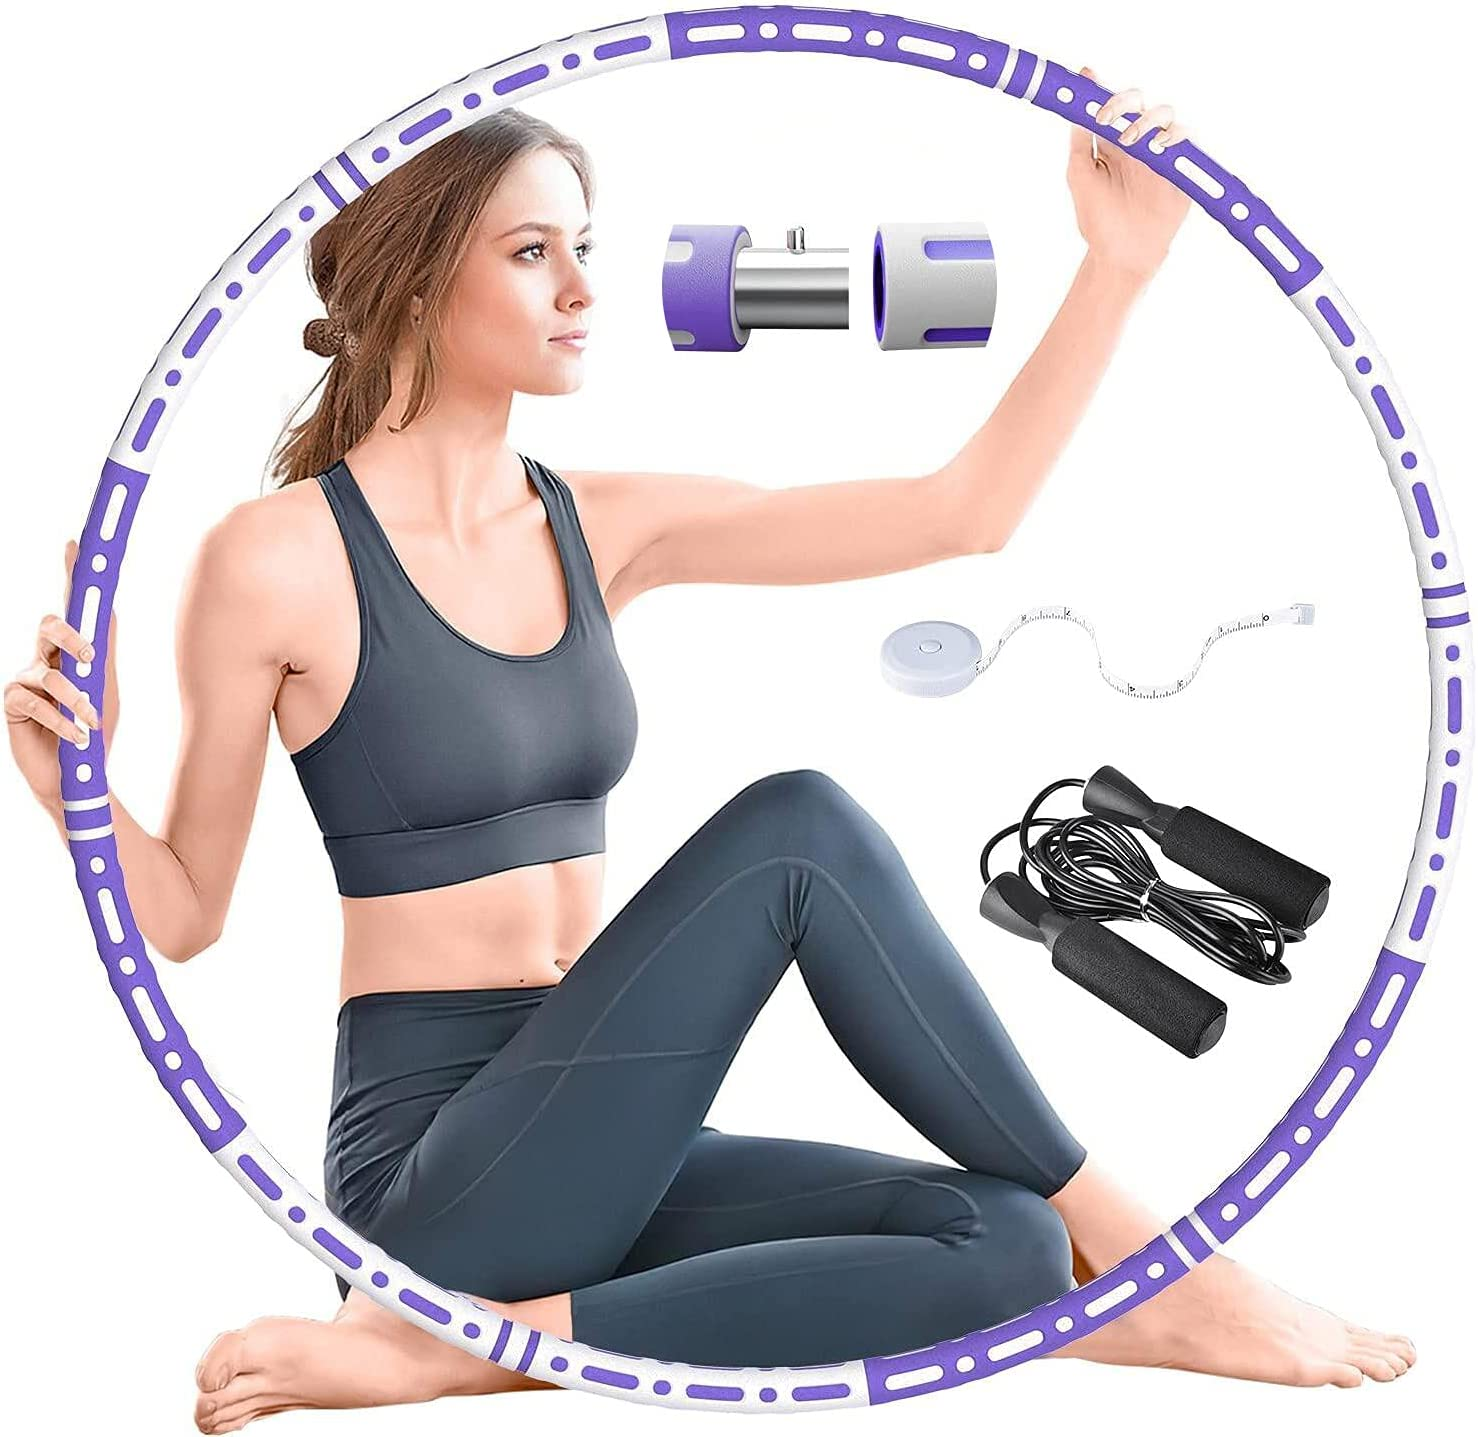 RIRGI Exercise Hoop for Adults Weighted Fitness Hoop, Exercise Circle Pilates Circles 6 Section Detachable Weighted Circle and 2lb Adjustable Weight Pilates Hoop for Men and Women : Sports & Outdoors